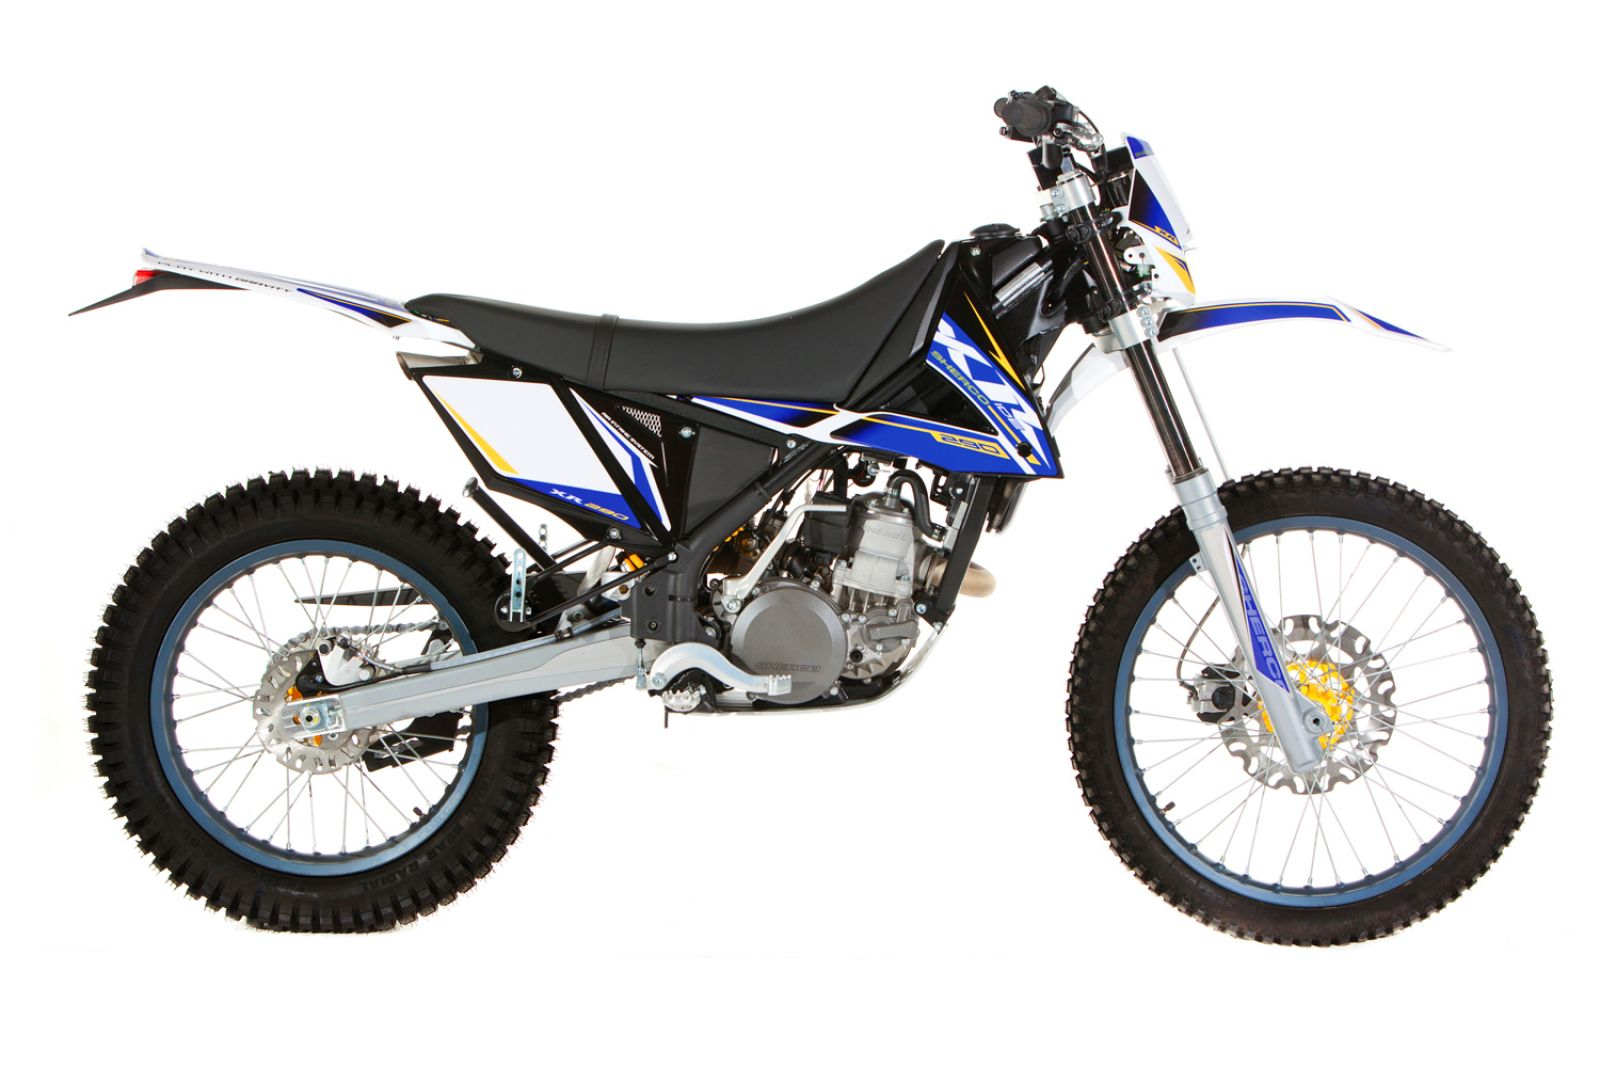 Sherco 125 Enduro Shark Replica images #124640